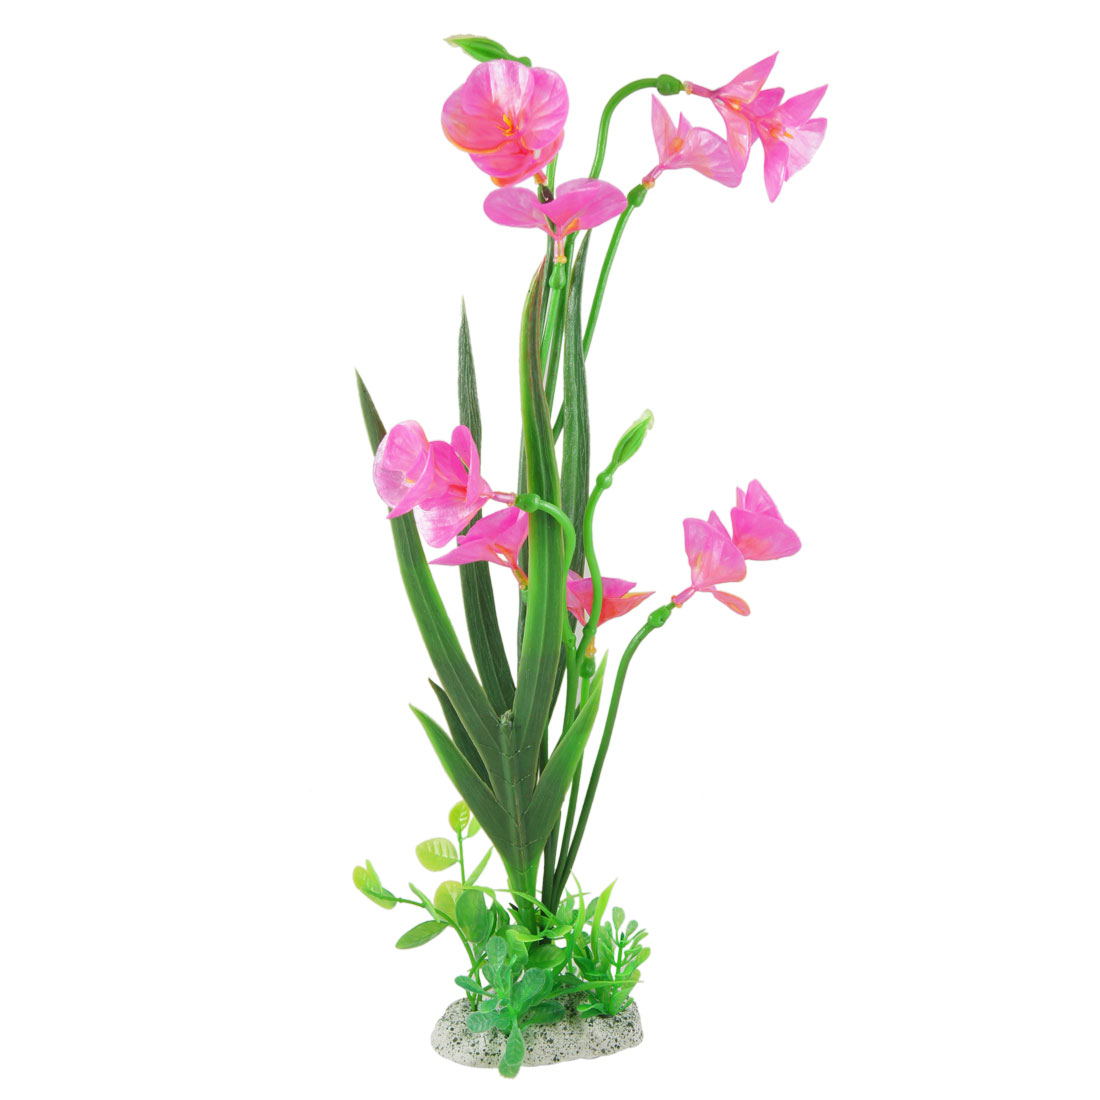 "15.7"" Height Manmade Fuchsia Flower Green Leaf Plants Decoration for Fish Tank"